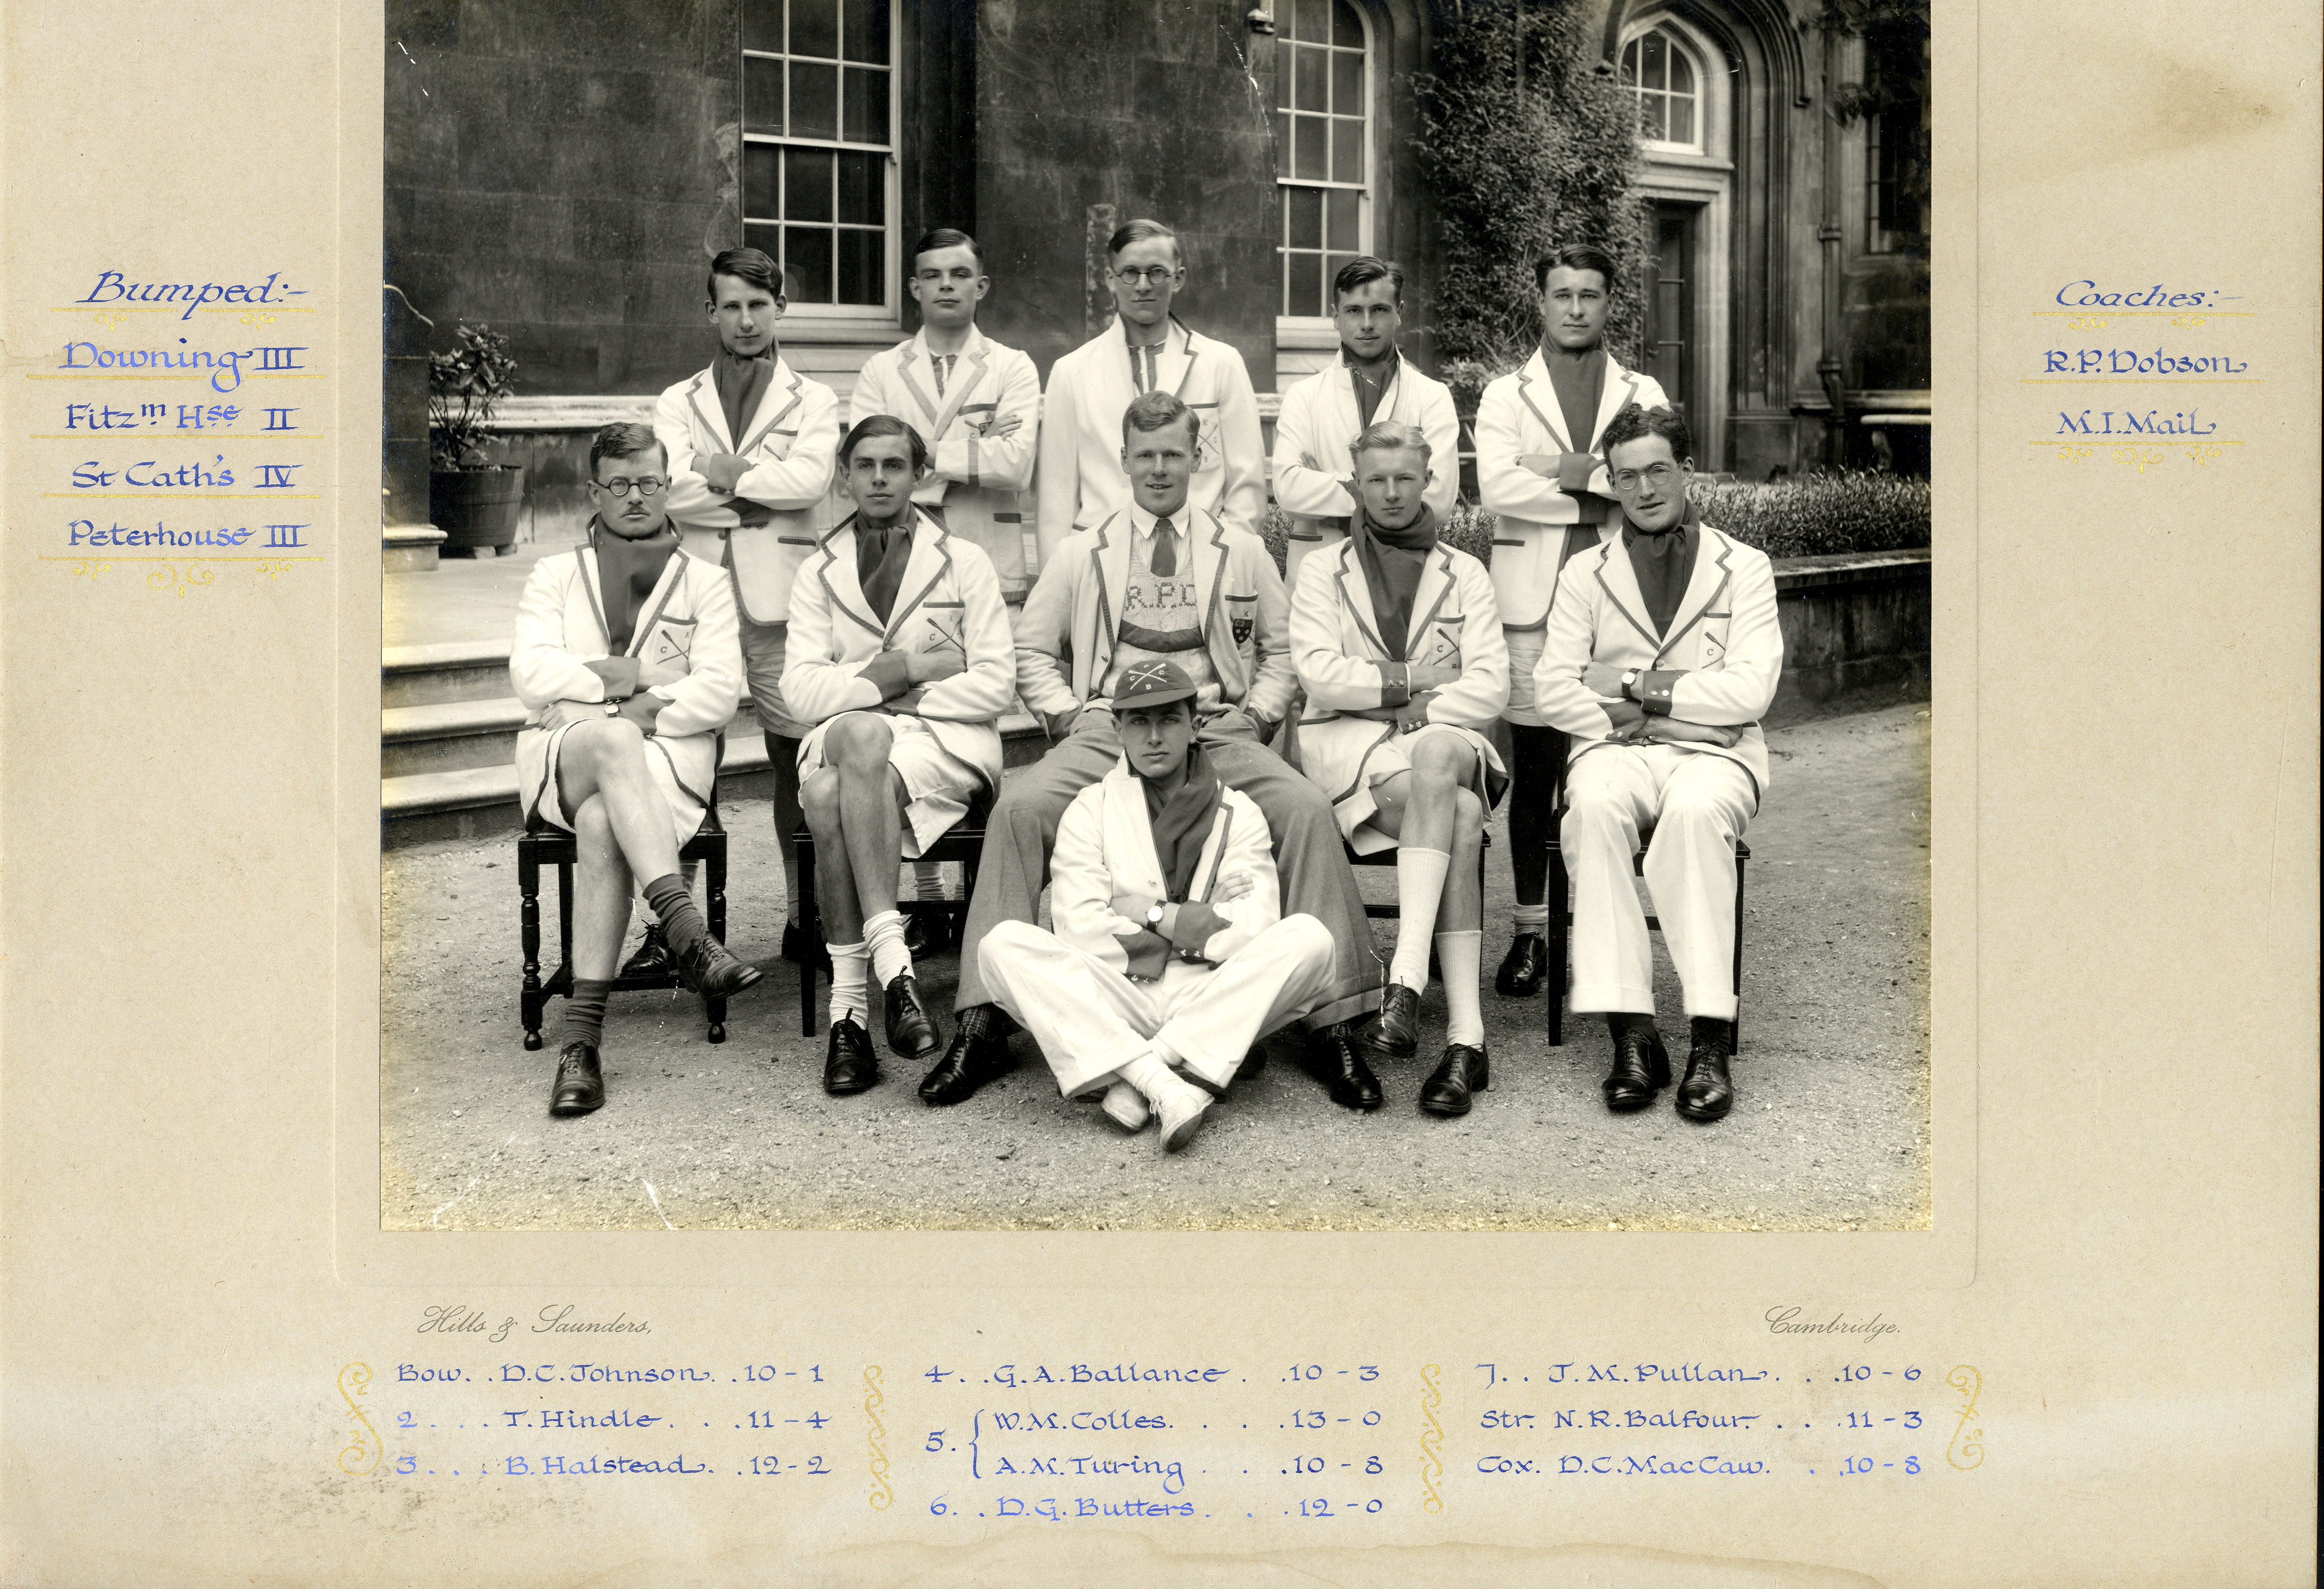 Second Mays boat of 1935. The photograph includes Alan Turing, who is second from the left at the back. [KCAS/5/4/2]